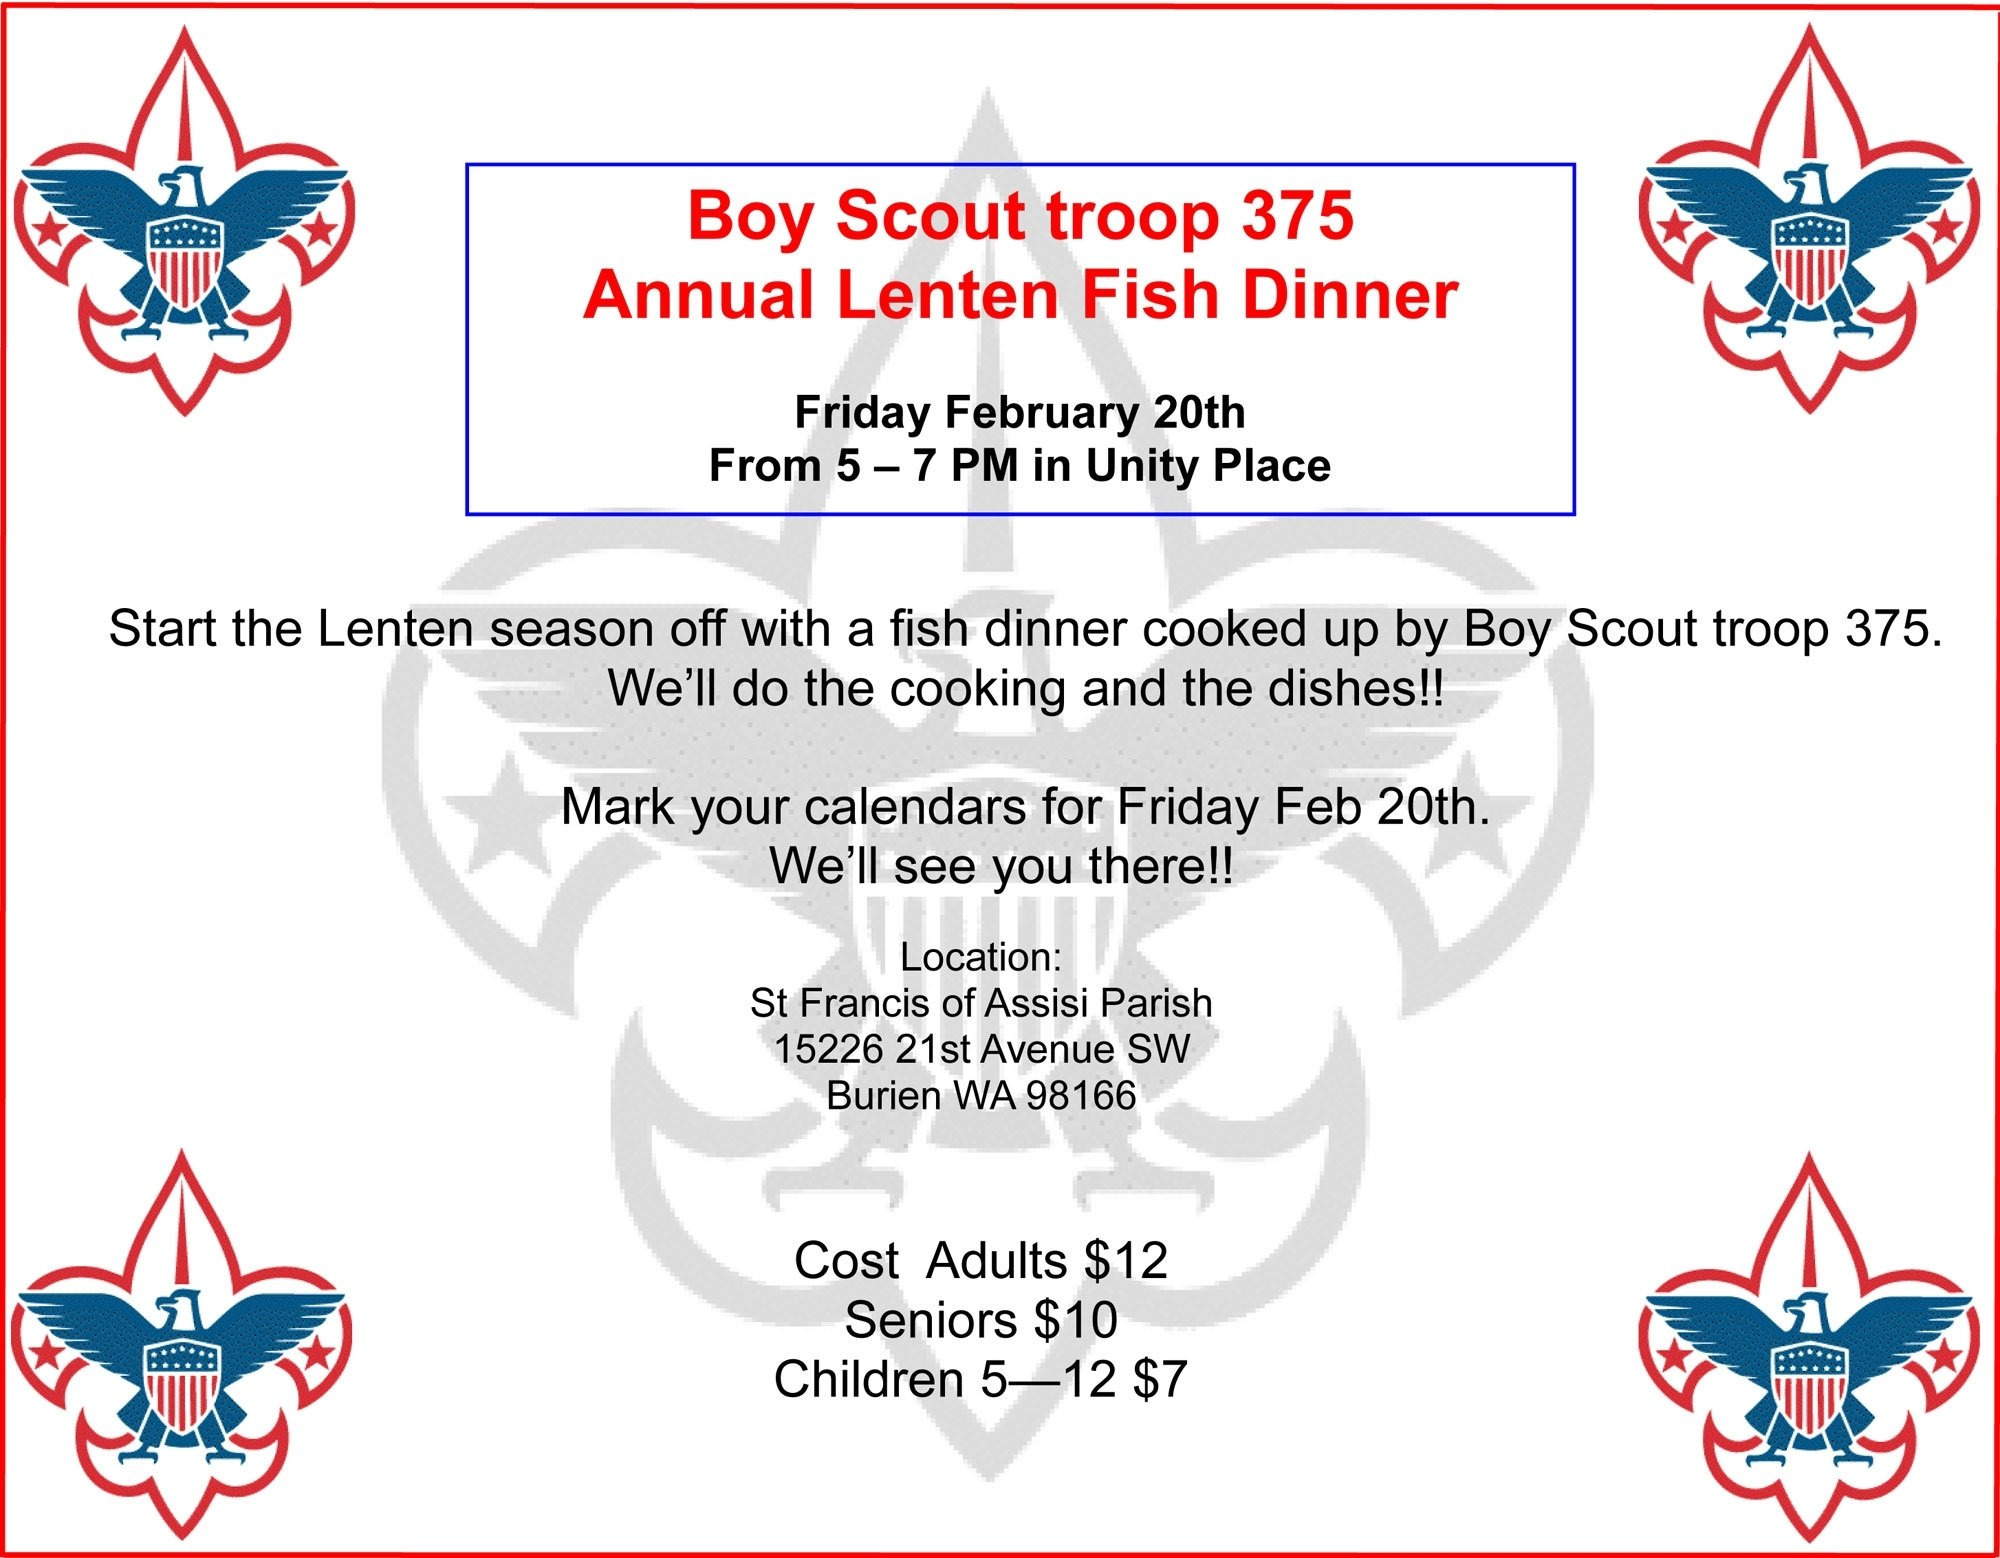 10 Stylish Fundraising Ideas For Boy Scouts boy scout troop 375s annual lenten fish dinner will be friday feb